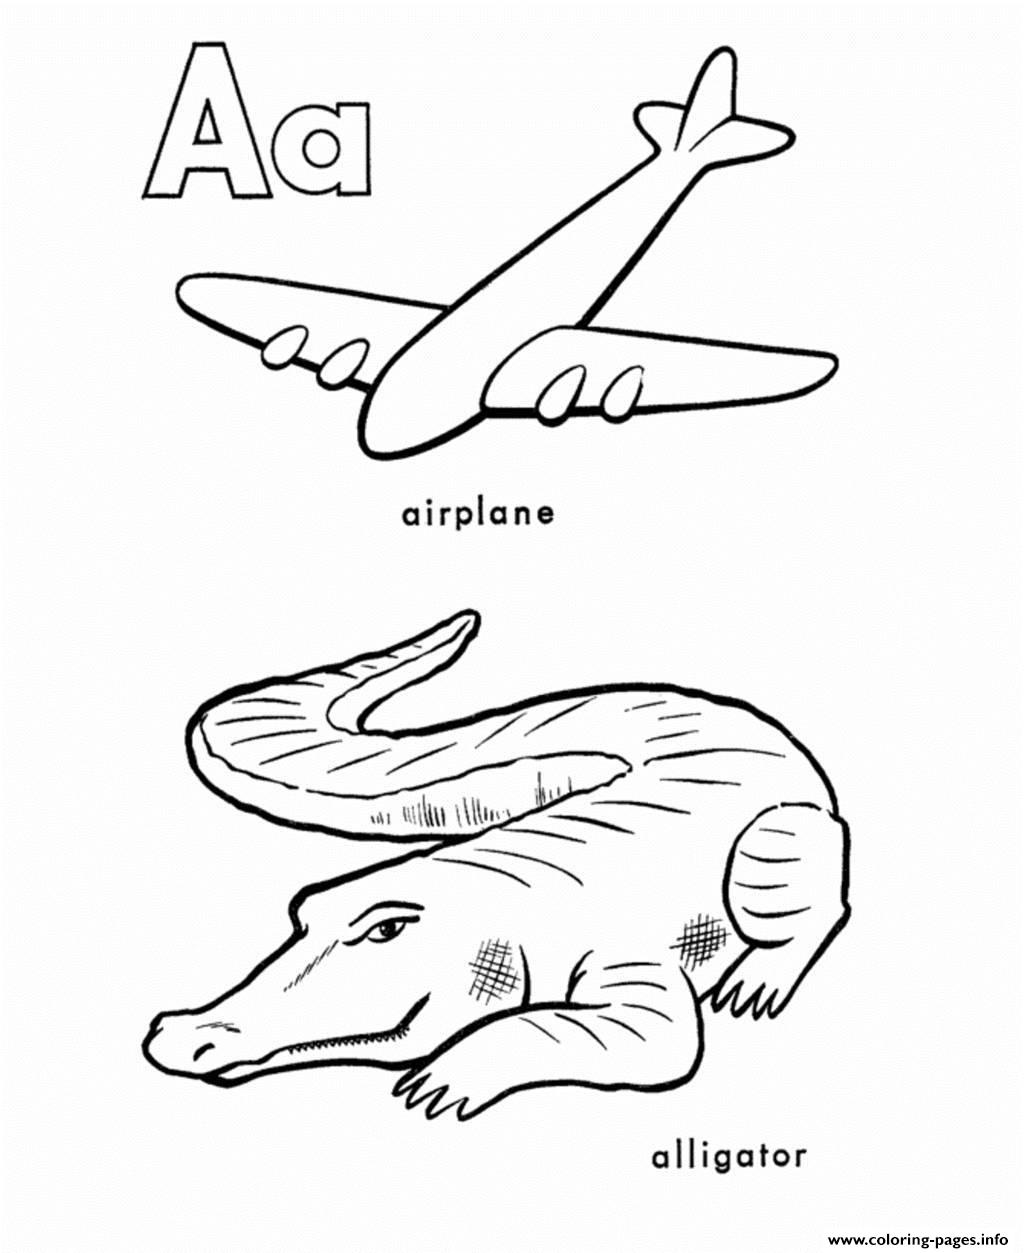 Alphabet S Printable A Is For Airplane And Alligator16e3 Coloring Pages Printable